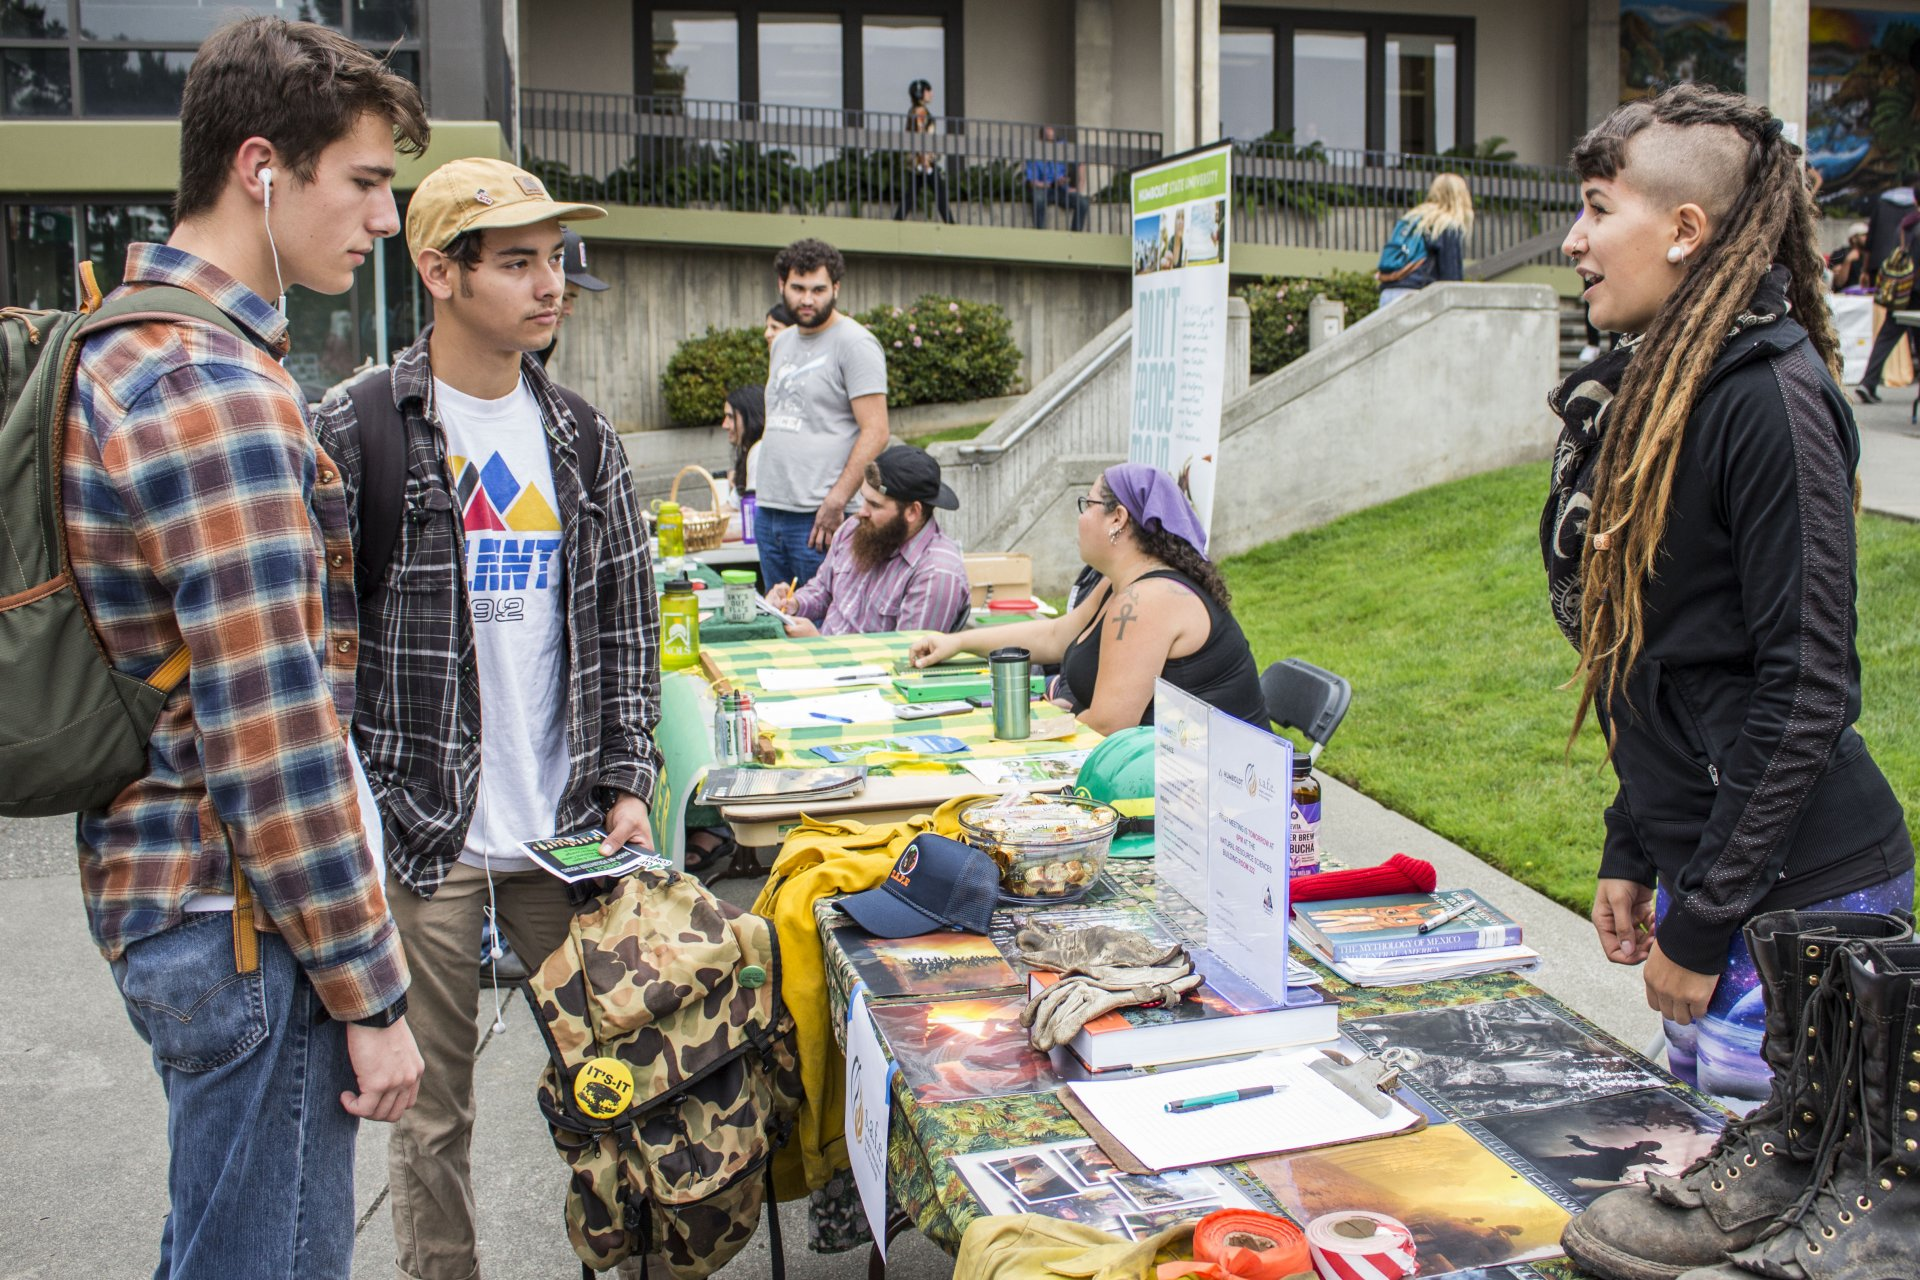 (left to right) Kyle Groben and Austin Prieto check out the SAFE ( Student Association for Fire Ecology) table with member and firefighter Tenaya Wood. | Photo by Ian Benjamin Finnegan Thompson